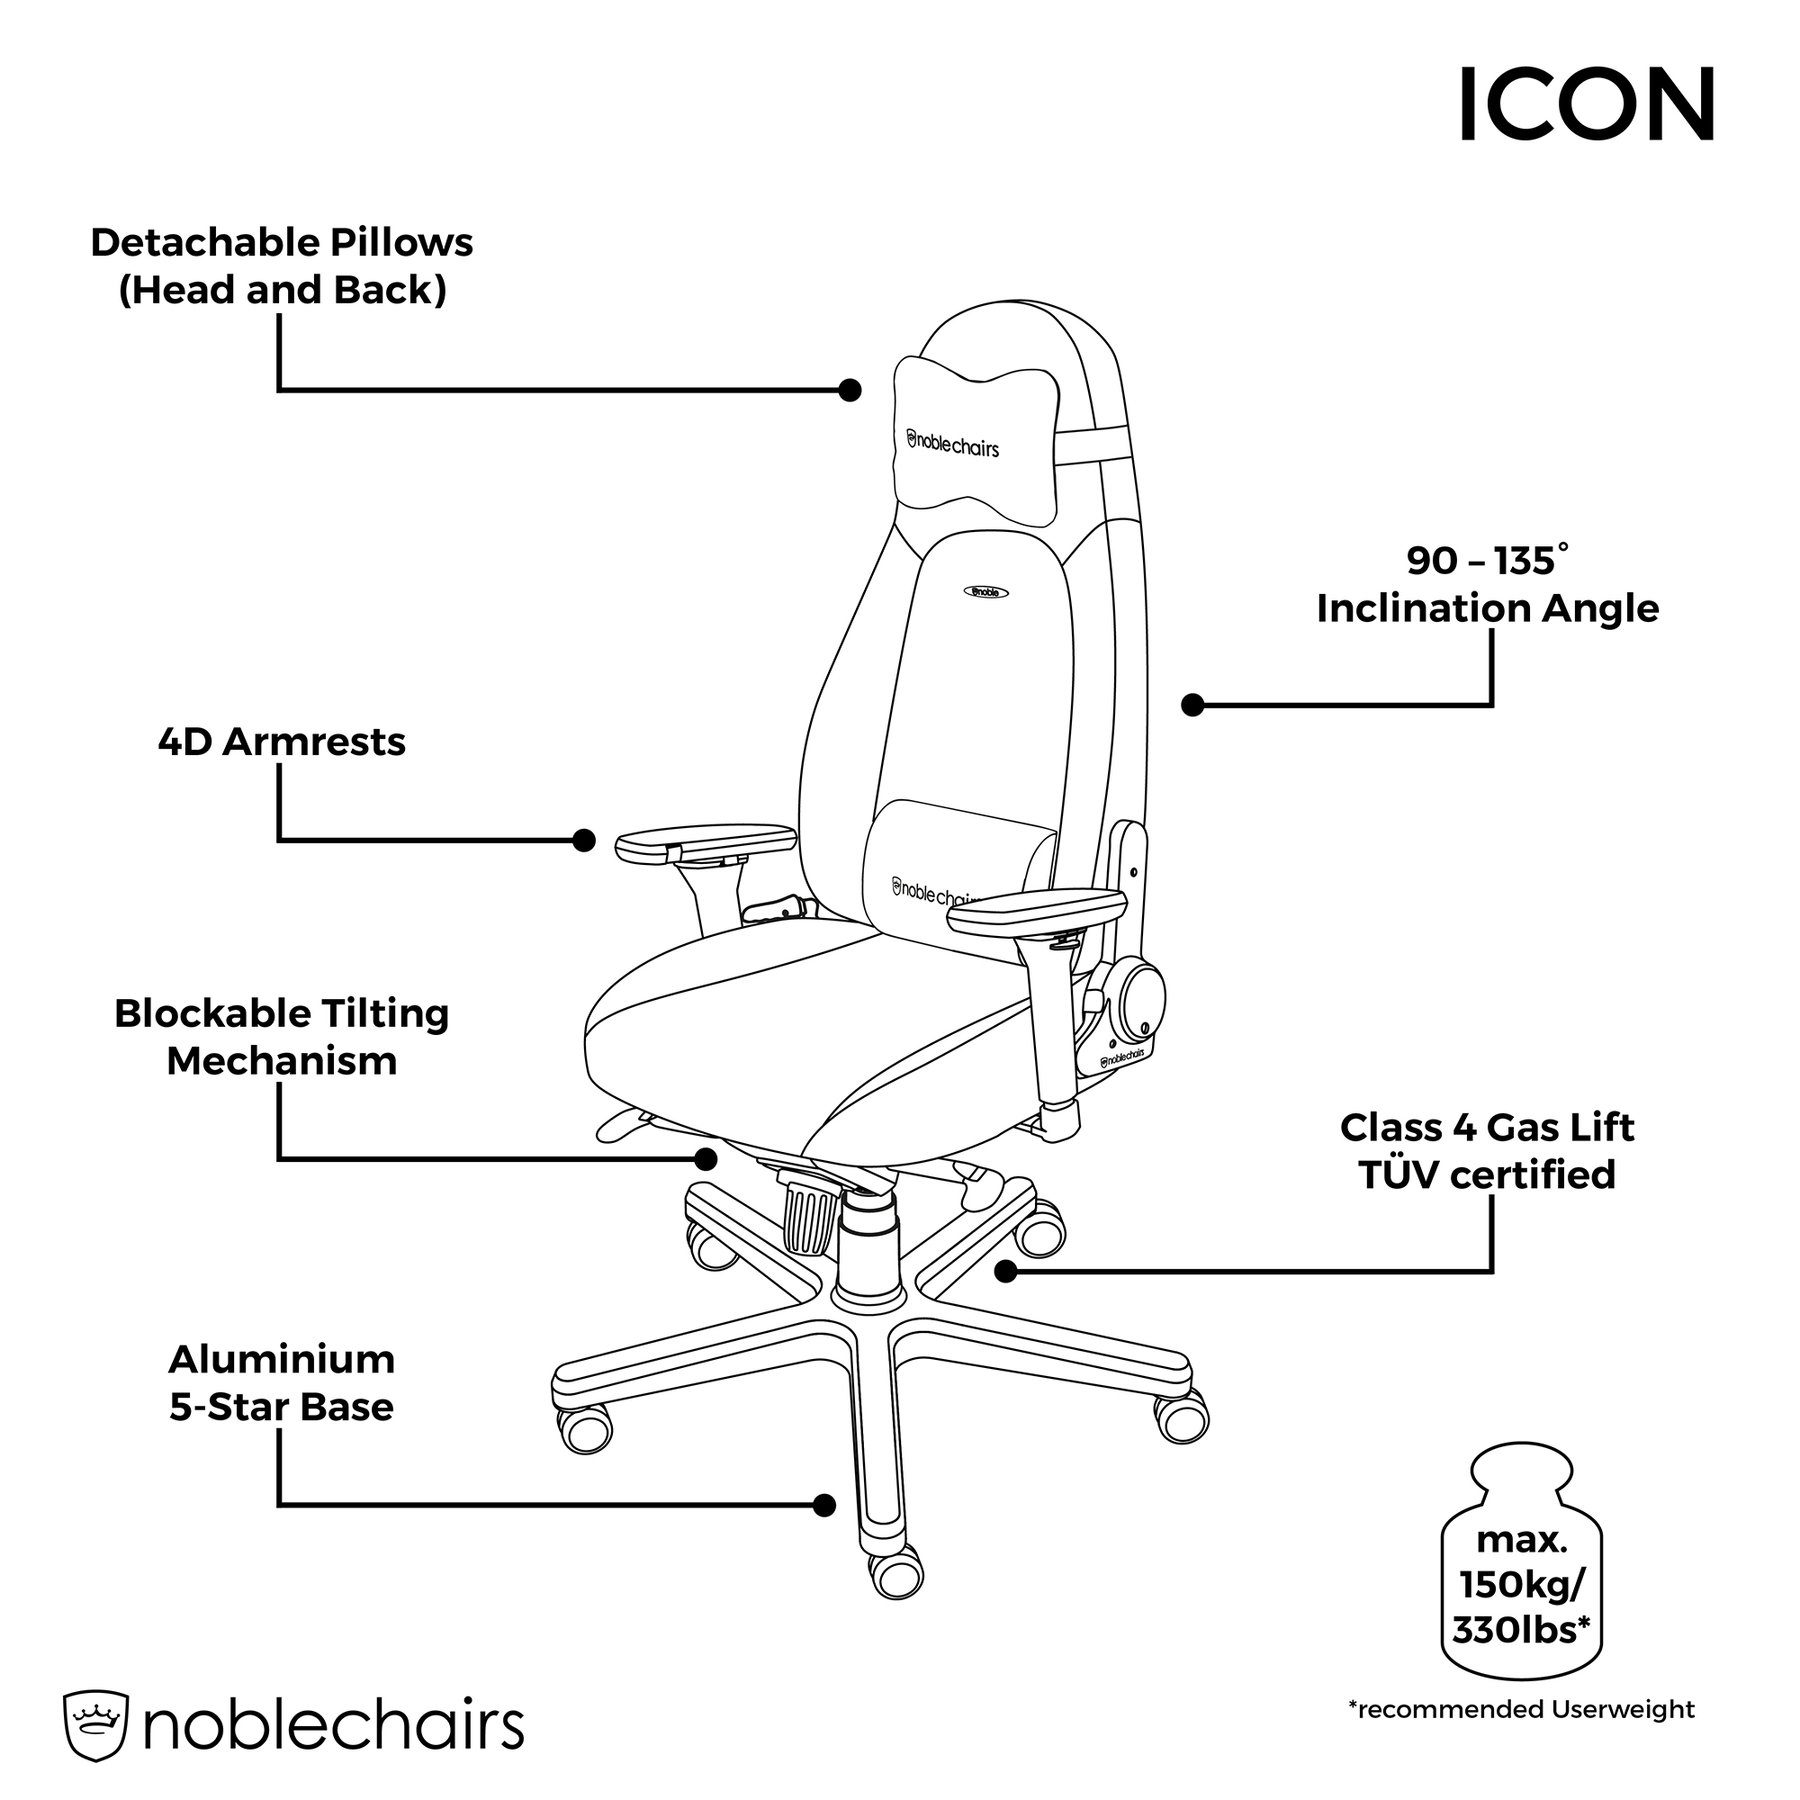 noblechairs-Icon-caracteristicas